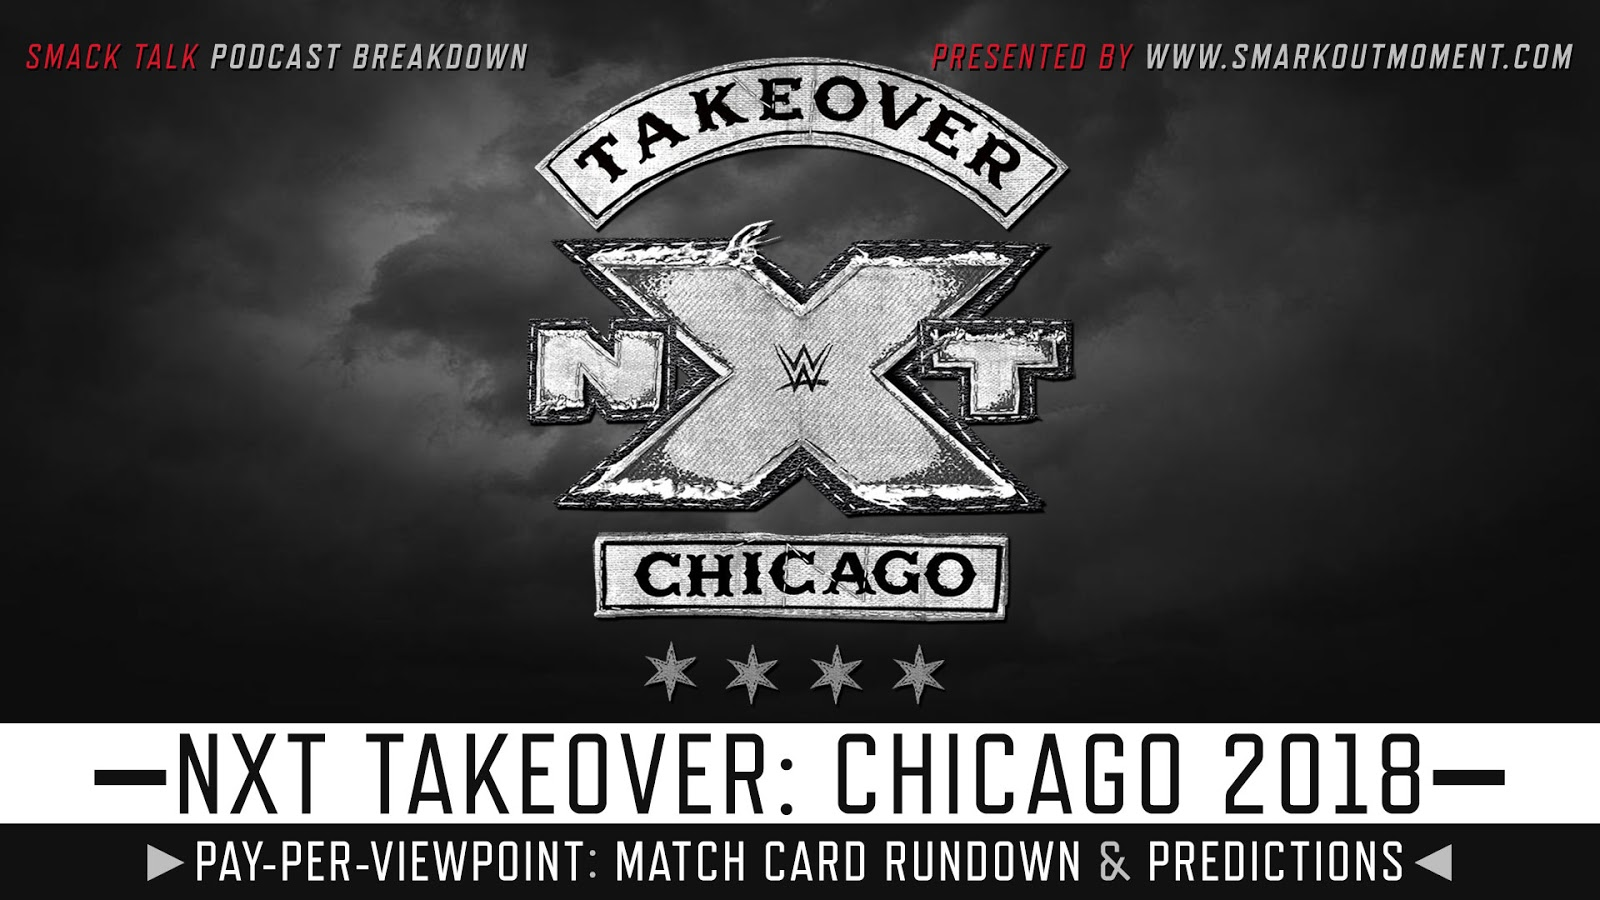 WWE NXT TakeOver: Chicago 2018 spoilers podcast